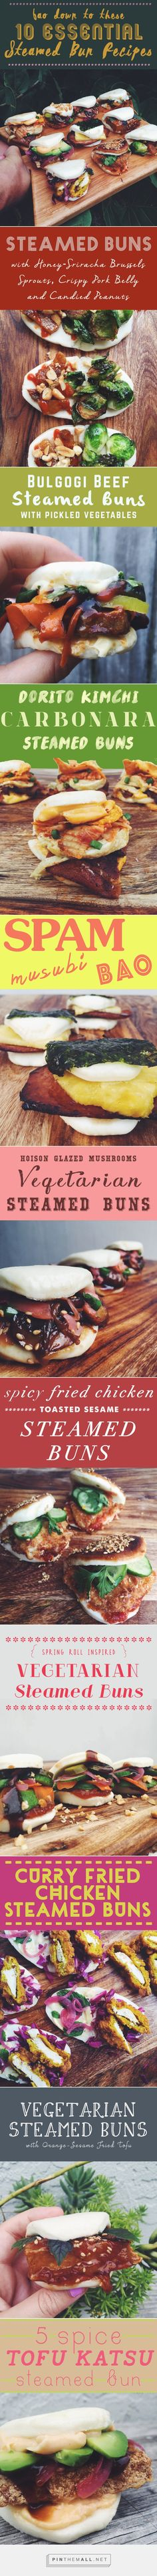 Bao Down to These 10 Kick Ass Steamed Bun Recipes | Grilled Cheese Social - created via http://pinthemall.net